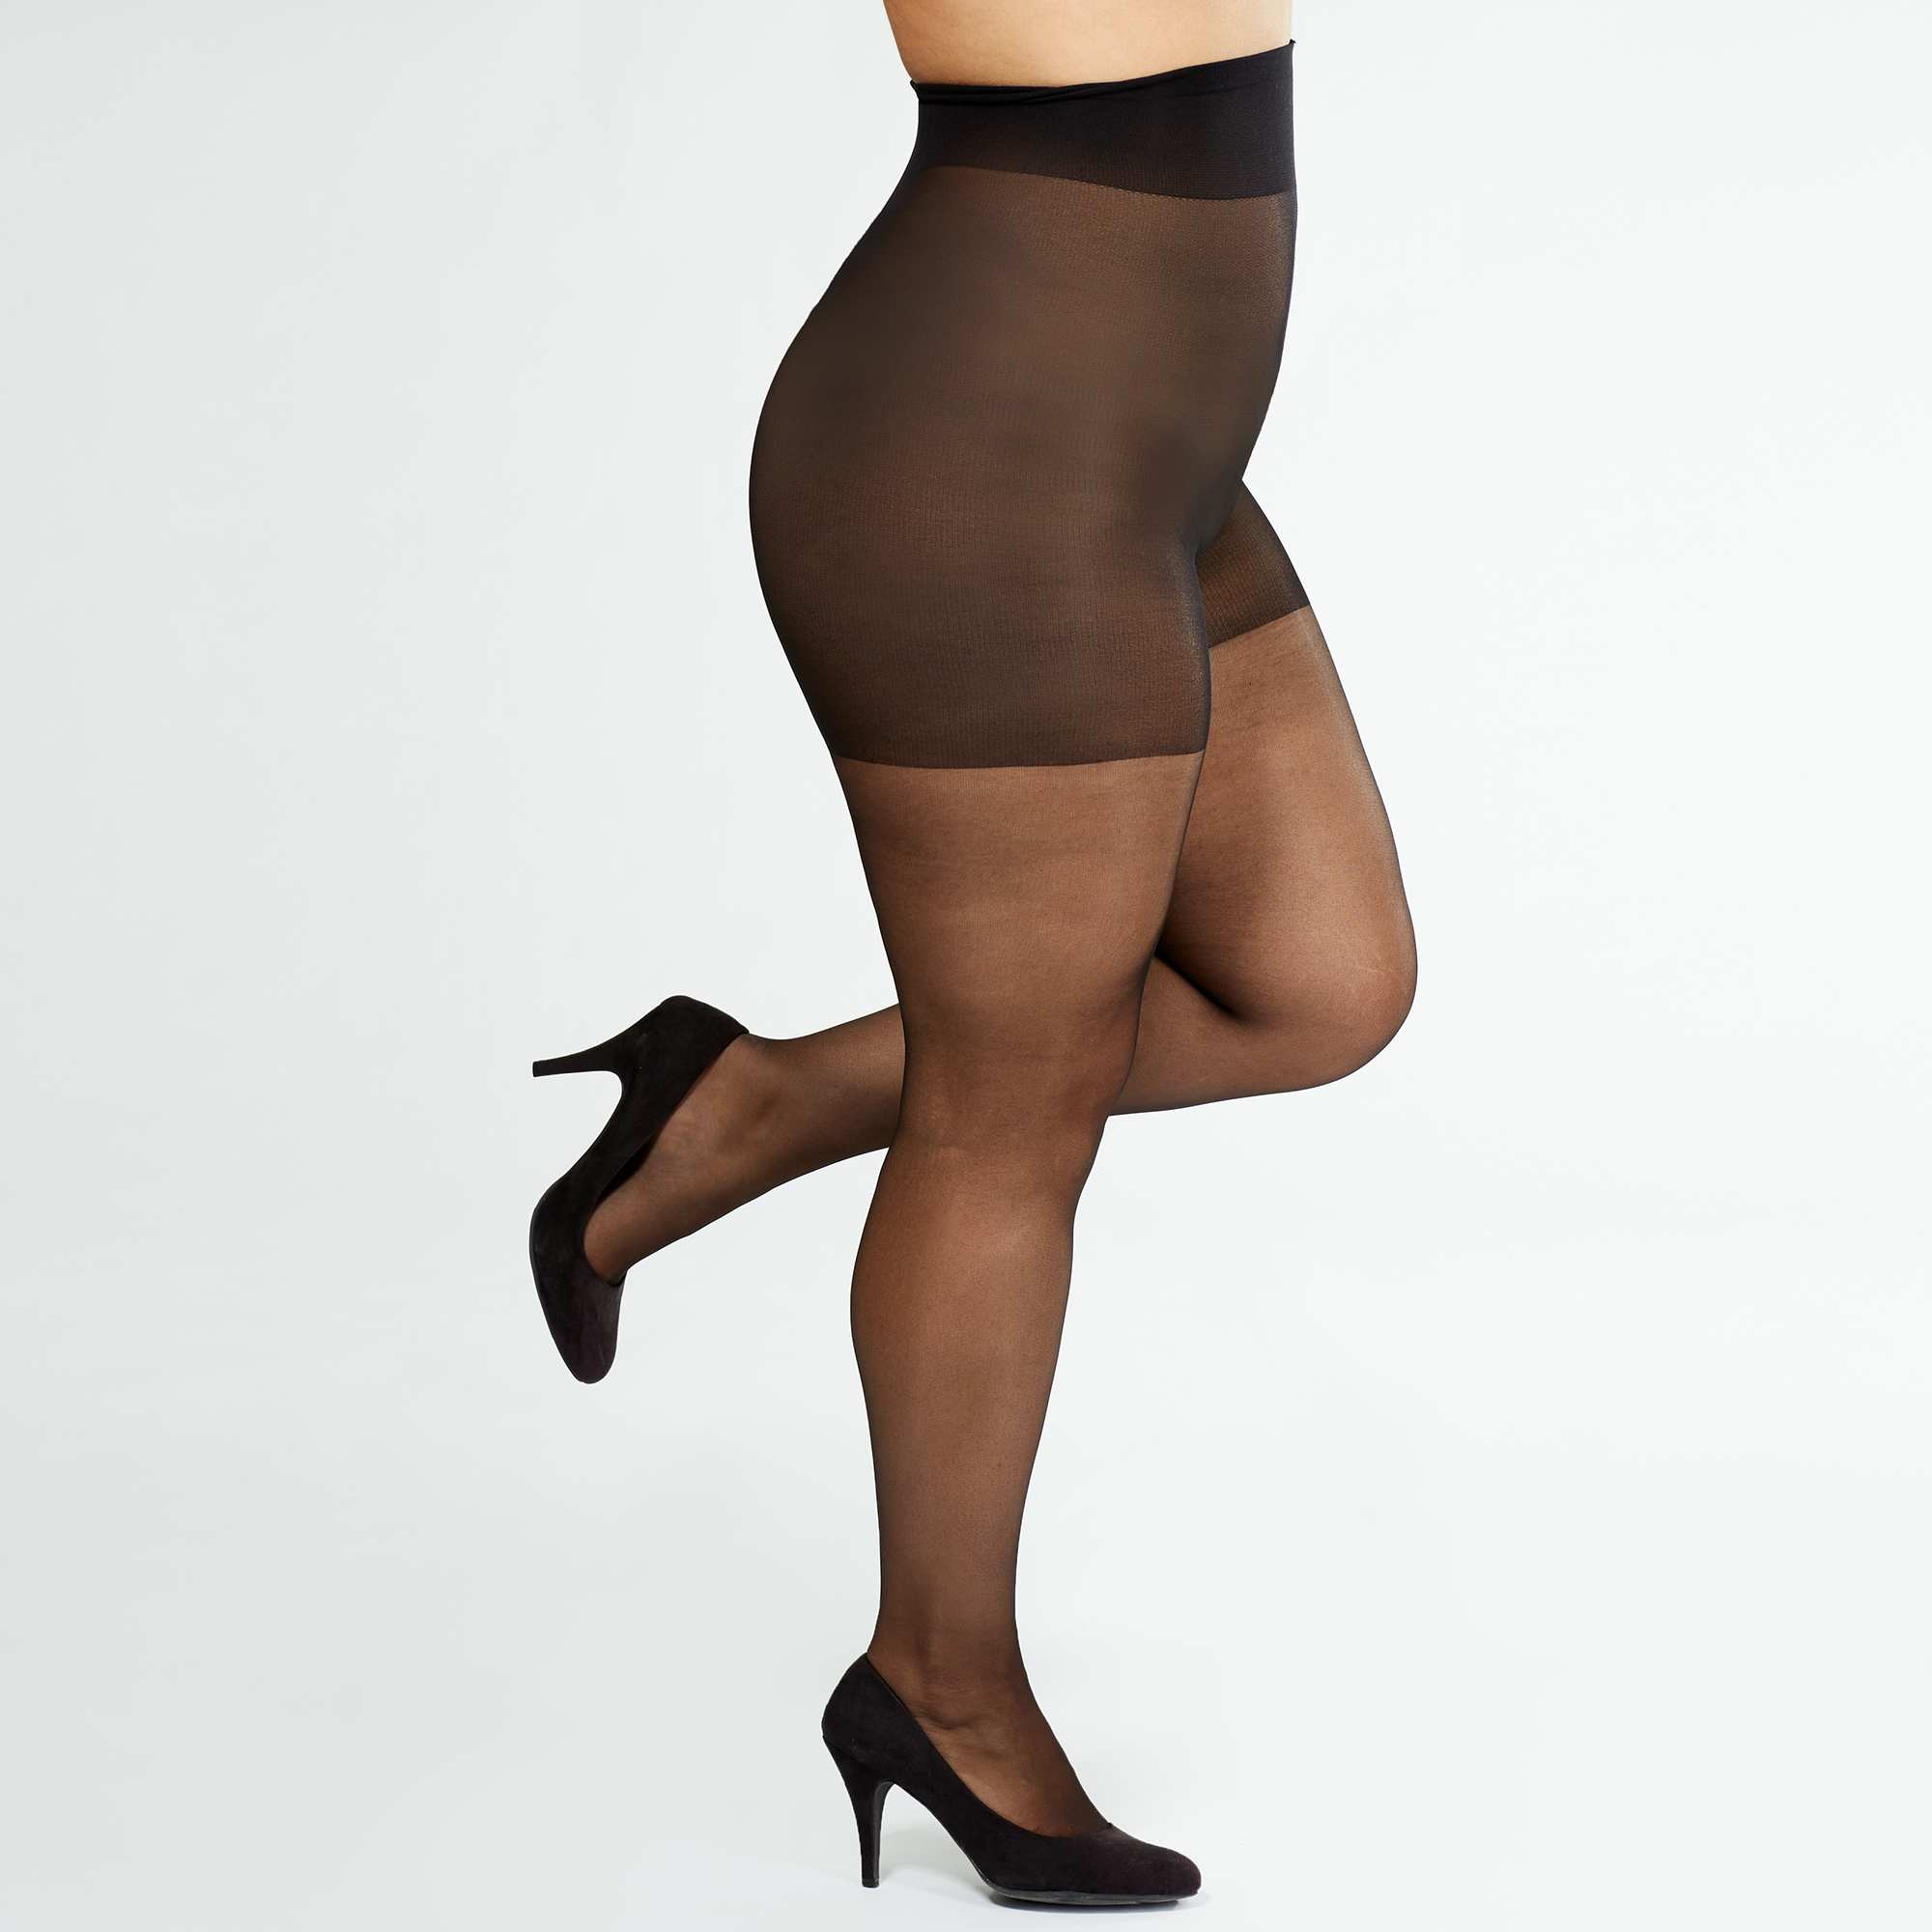 Collants  Sanpellegrino  Comodo Curvy + sizes 20D Grande taille ... b8f590e464e